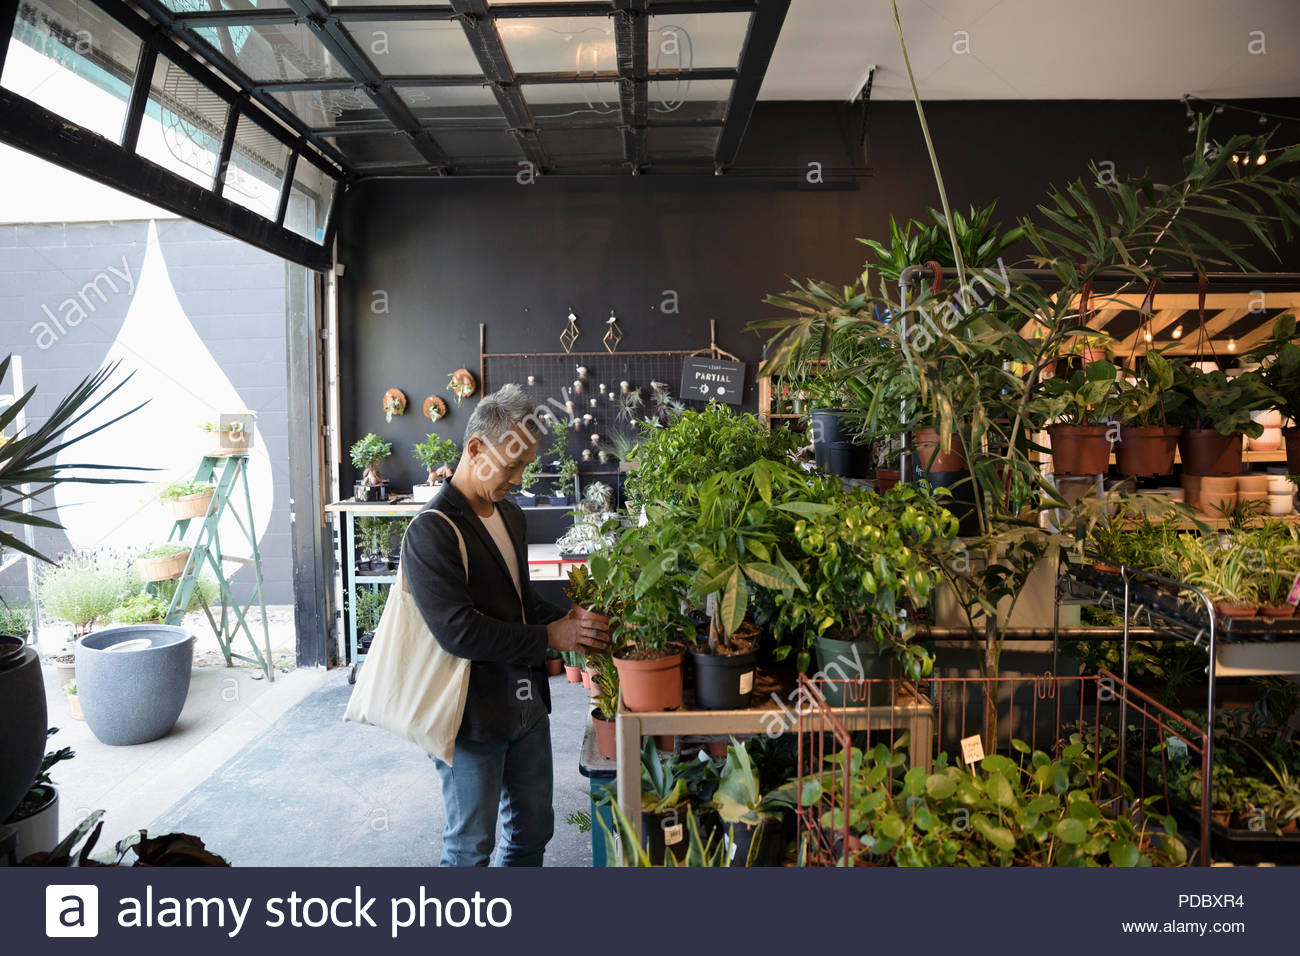 Man shopping in plant shop Photo Stock